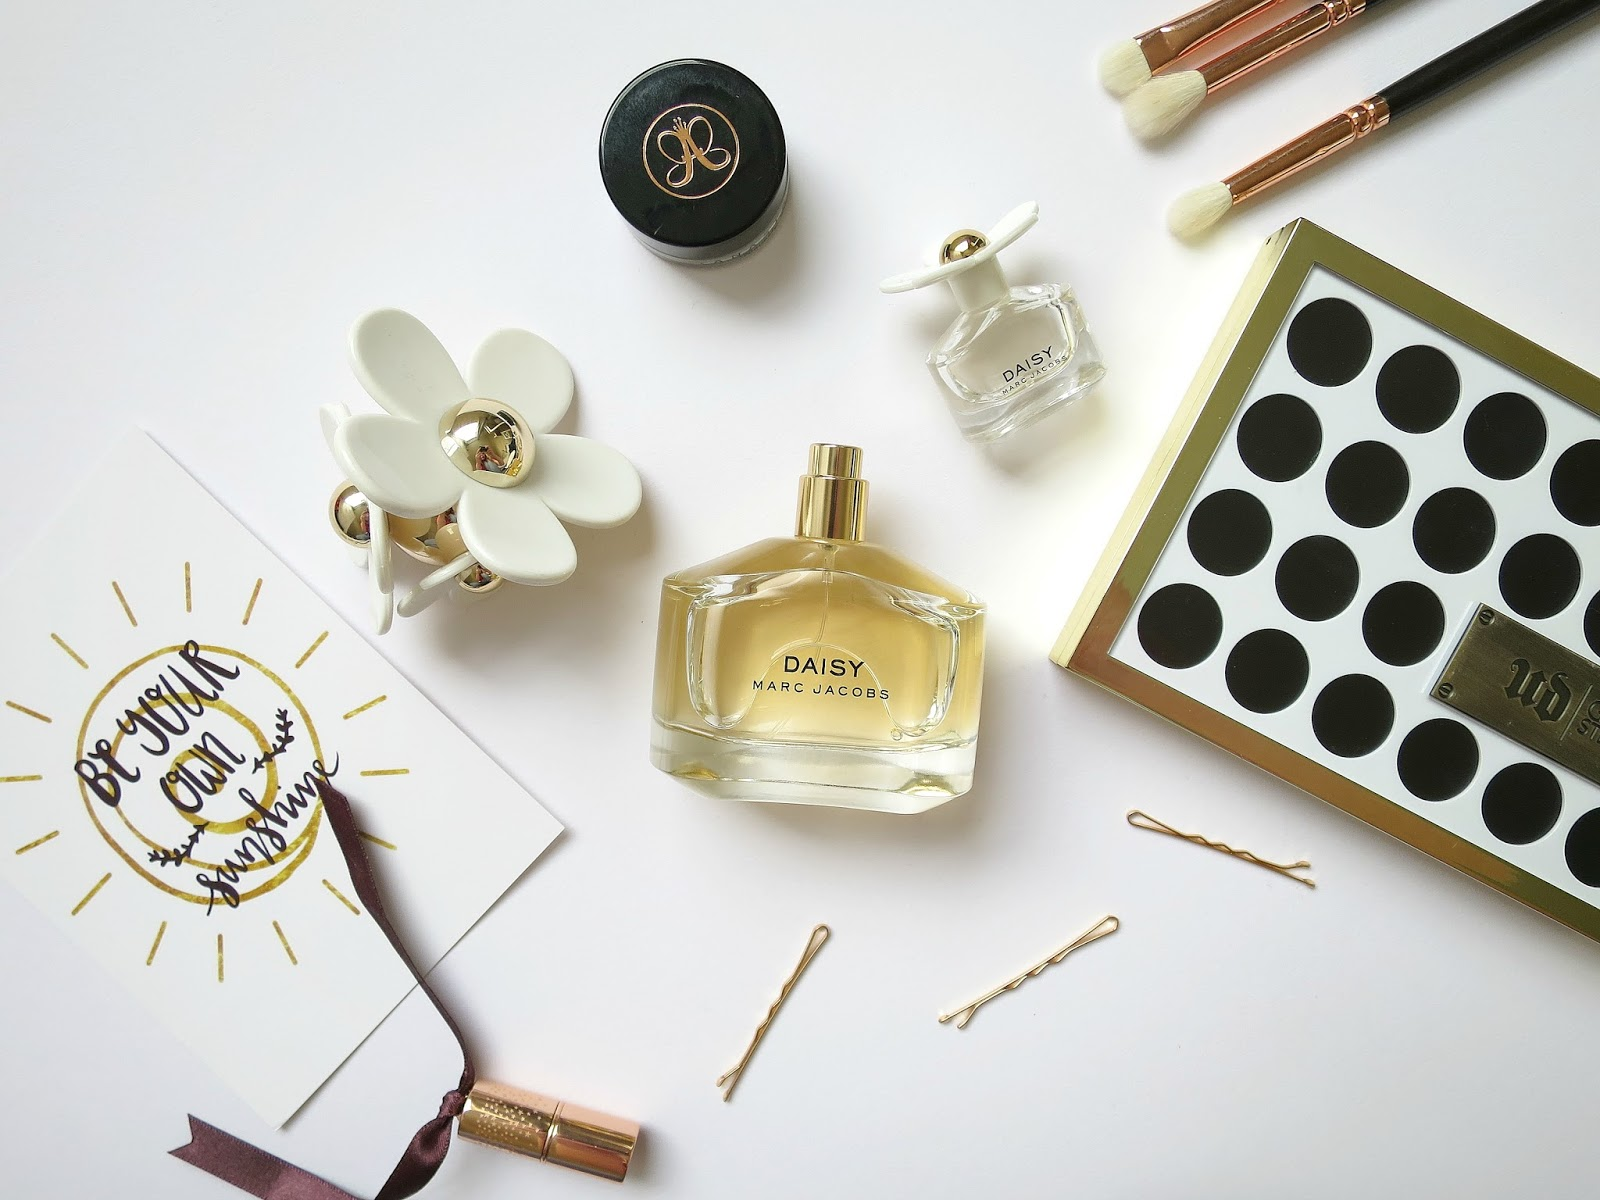 Marc jacobs daisy perfume lilies and lipbalm marc jacobs daisy perfume fragrance scent bottle flat lay floral izmirmasajfo